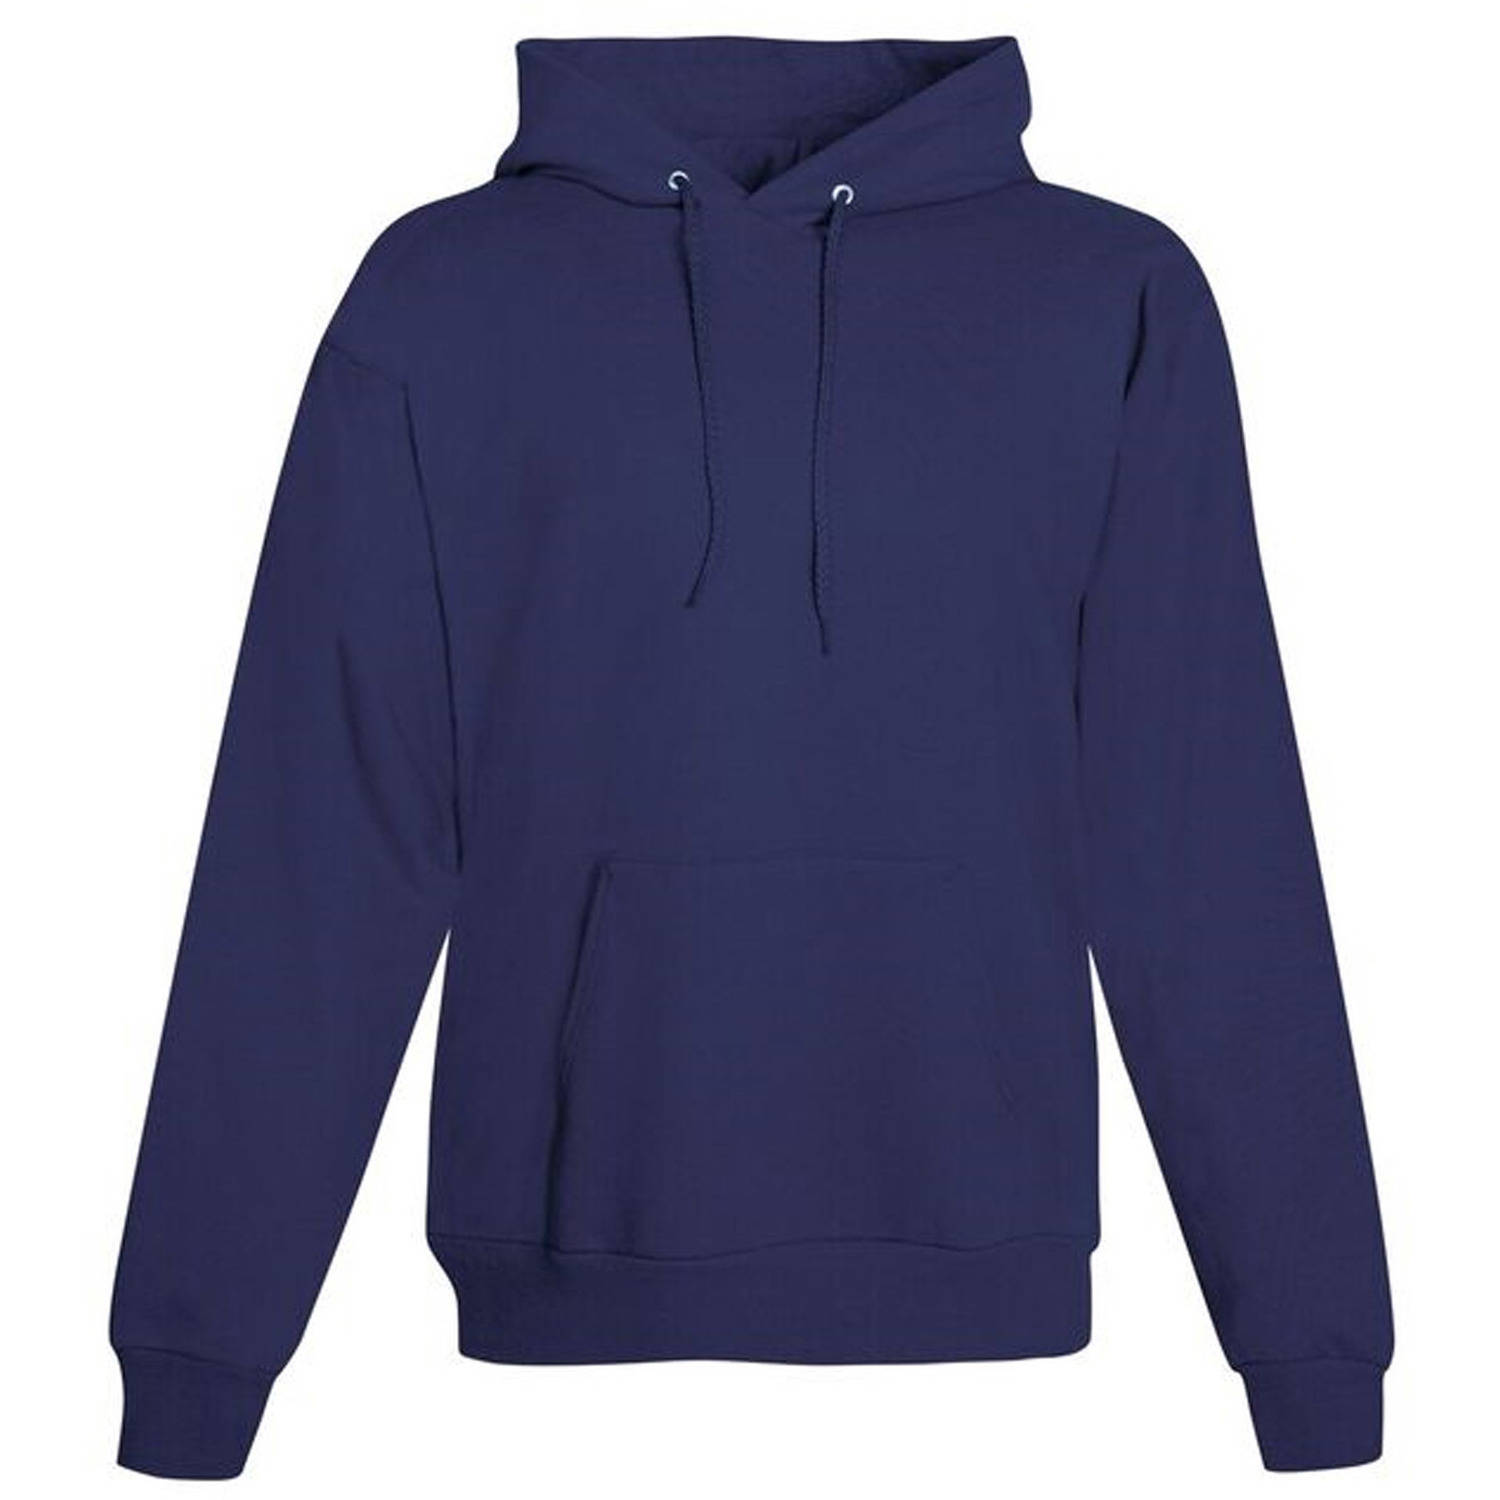 Hanes Men's EcoSmart Fleece Pullover Hoodie with Front Pocket ...